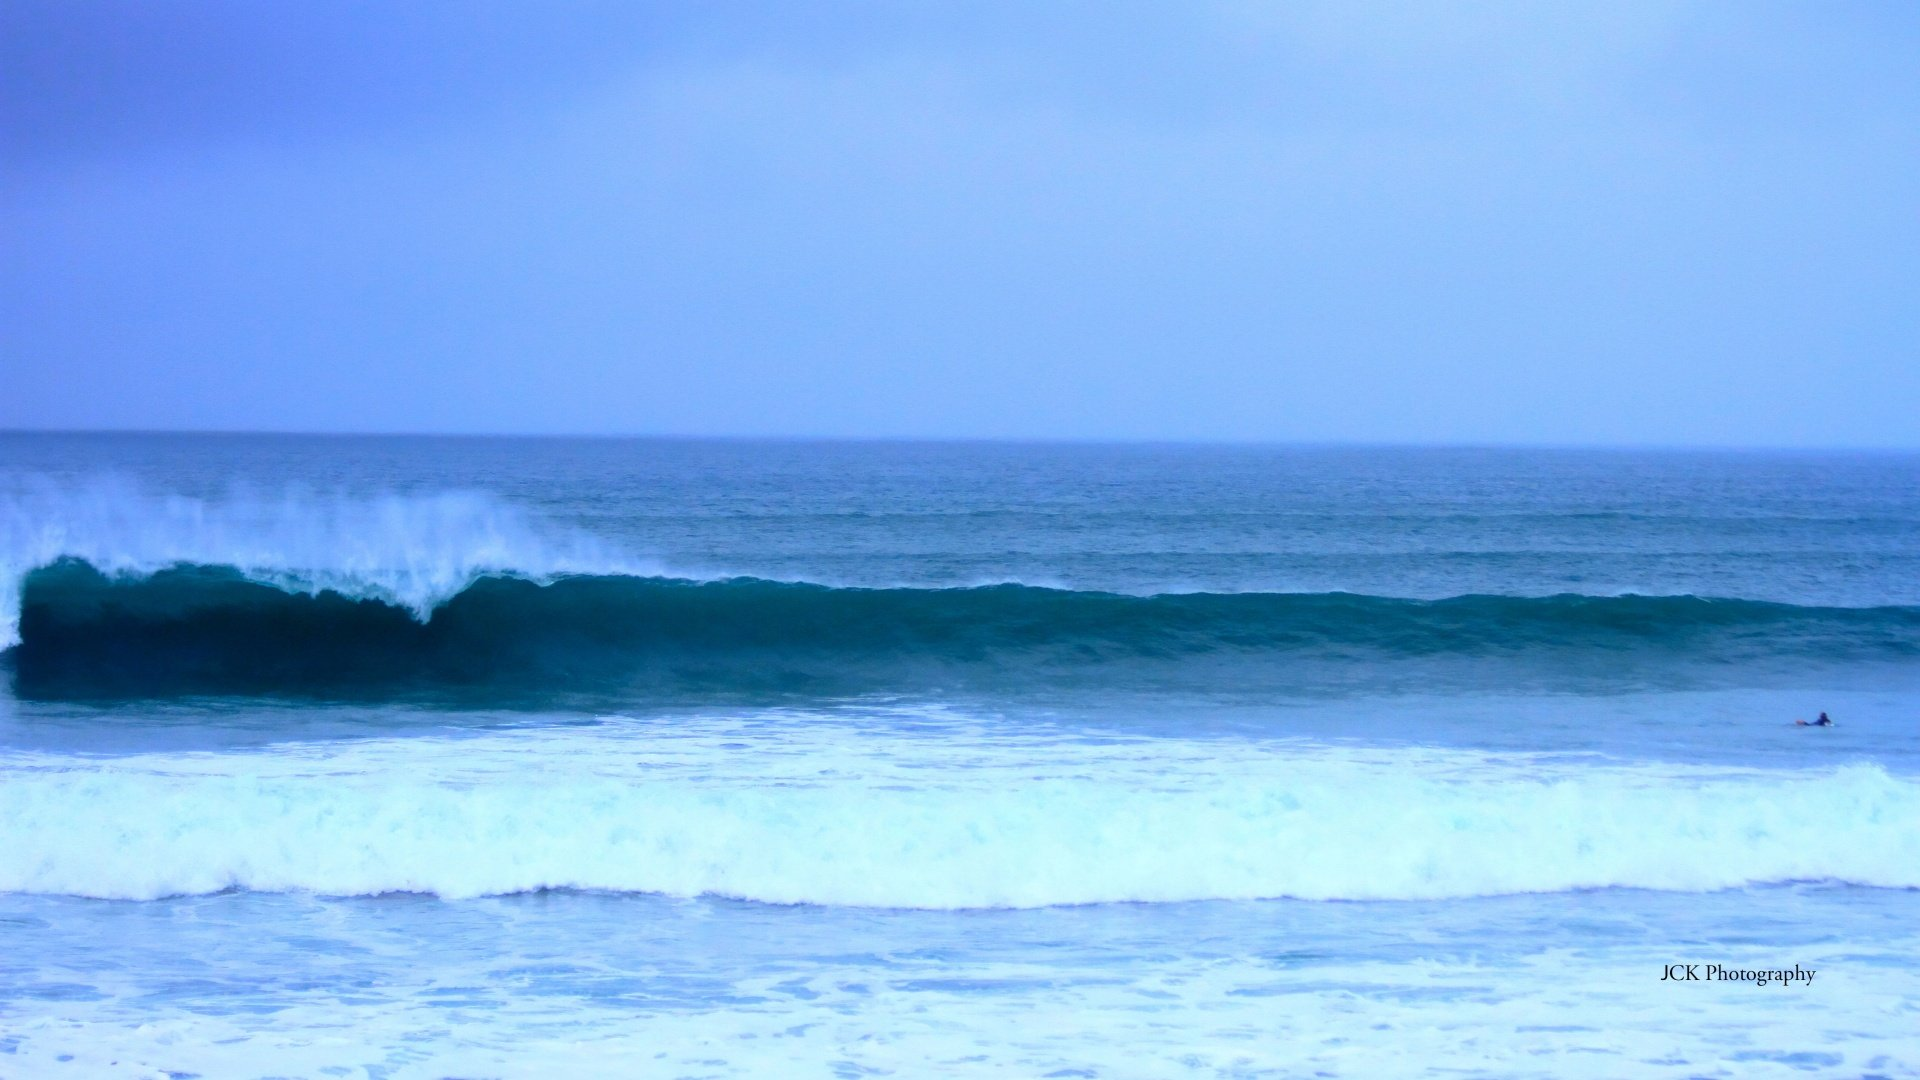 Josh Ken's photo of Porthmeor